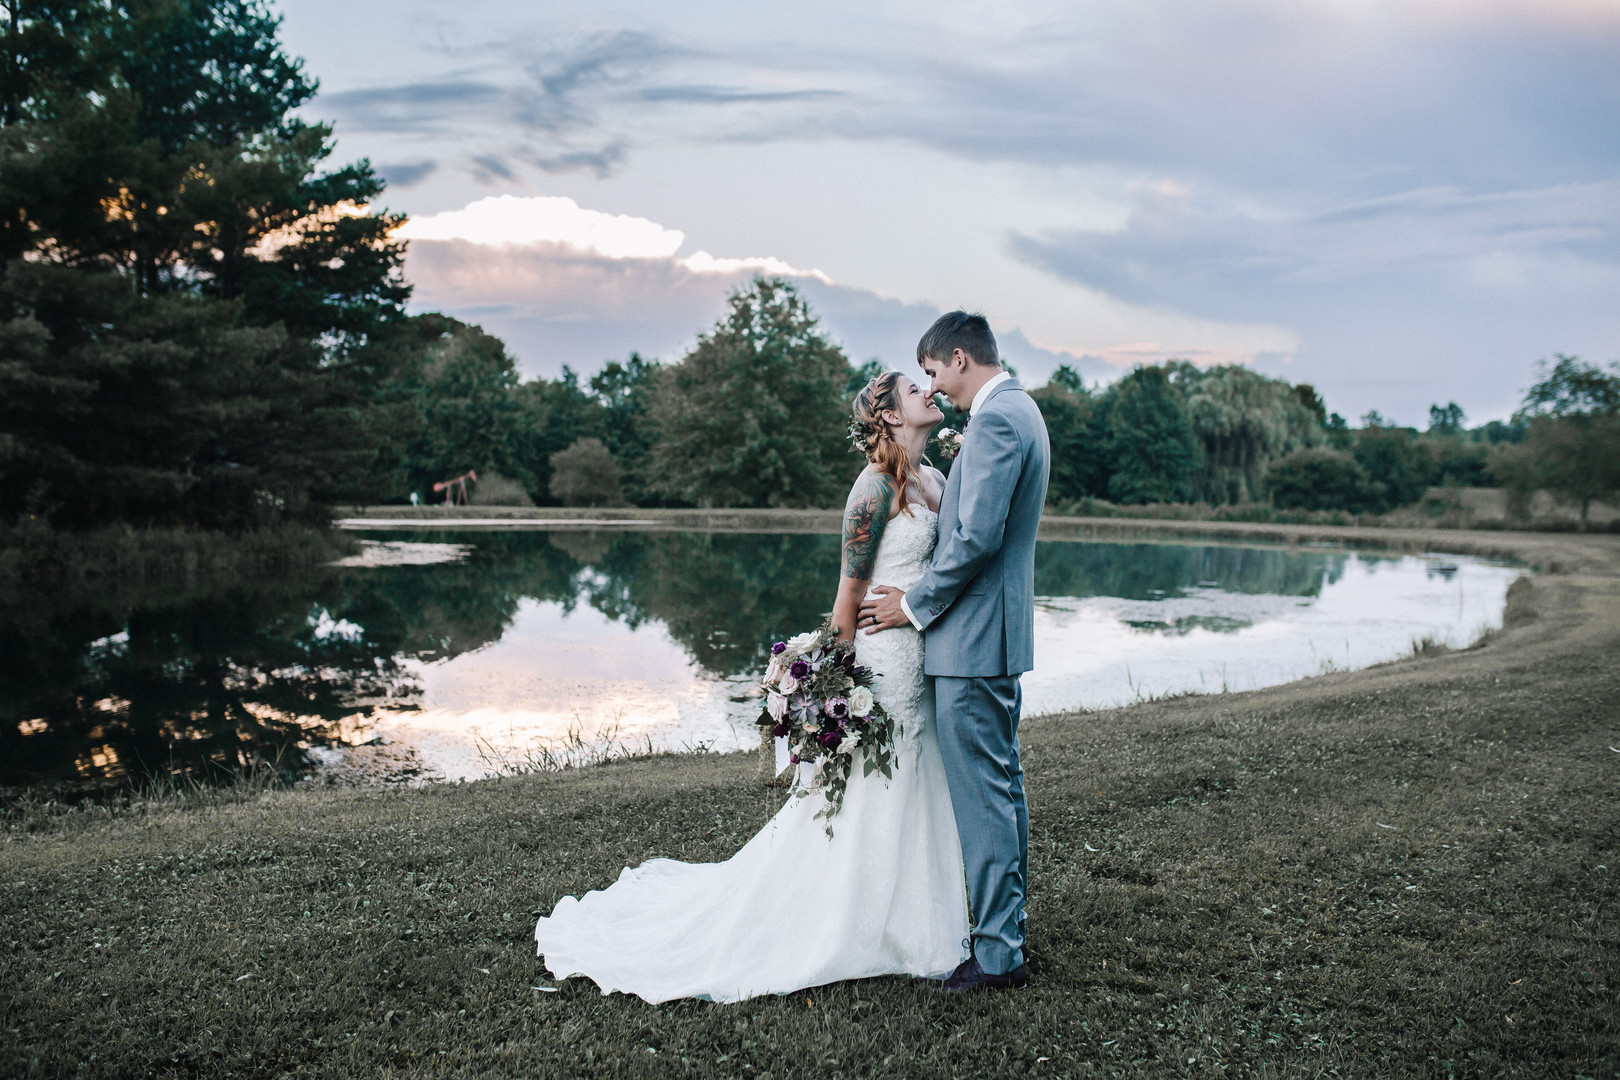 Felger_Felger_LindsayDawnPhotography_NortheastOhio00365WeddingPhotographerStacyDavid_big.jpg